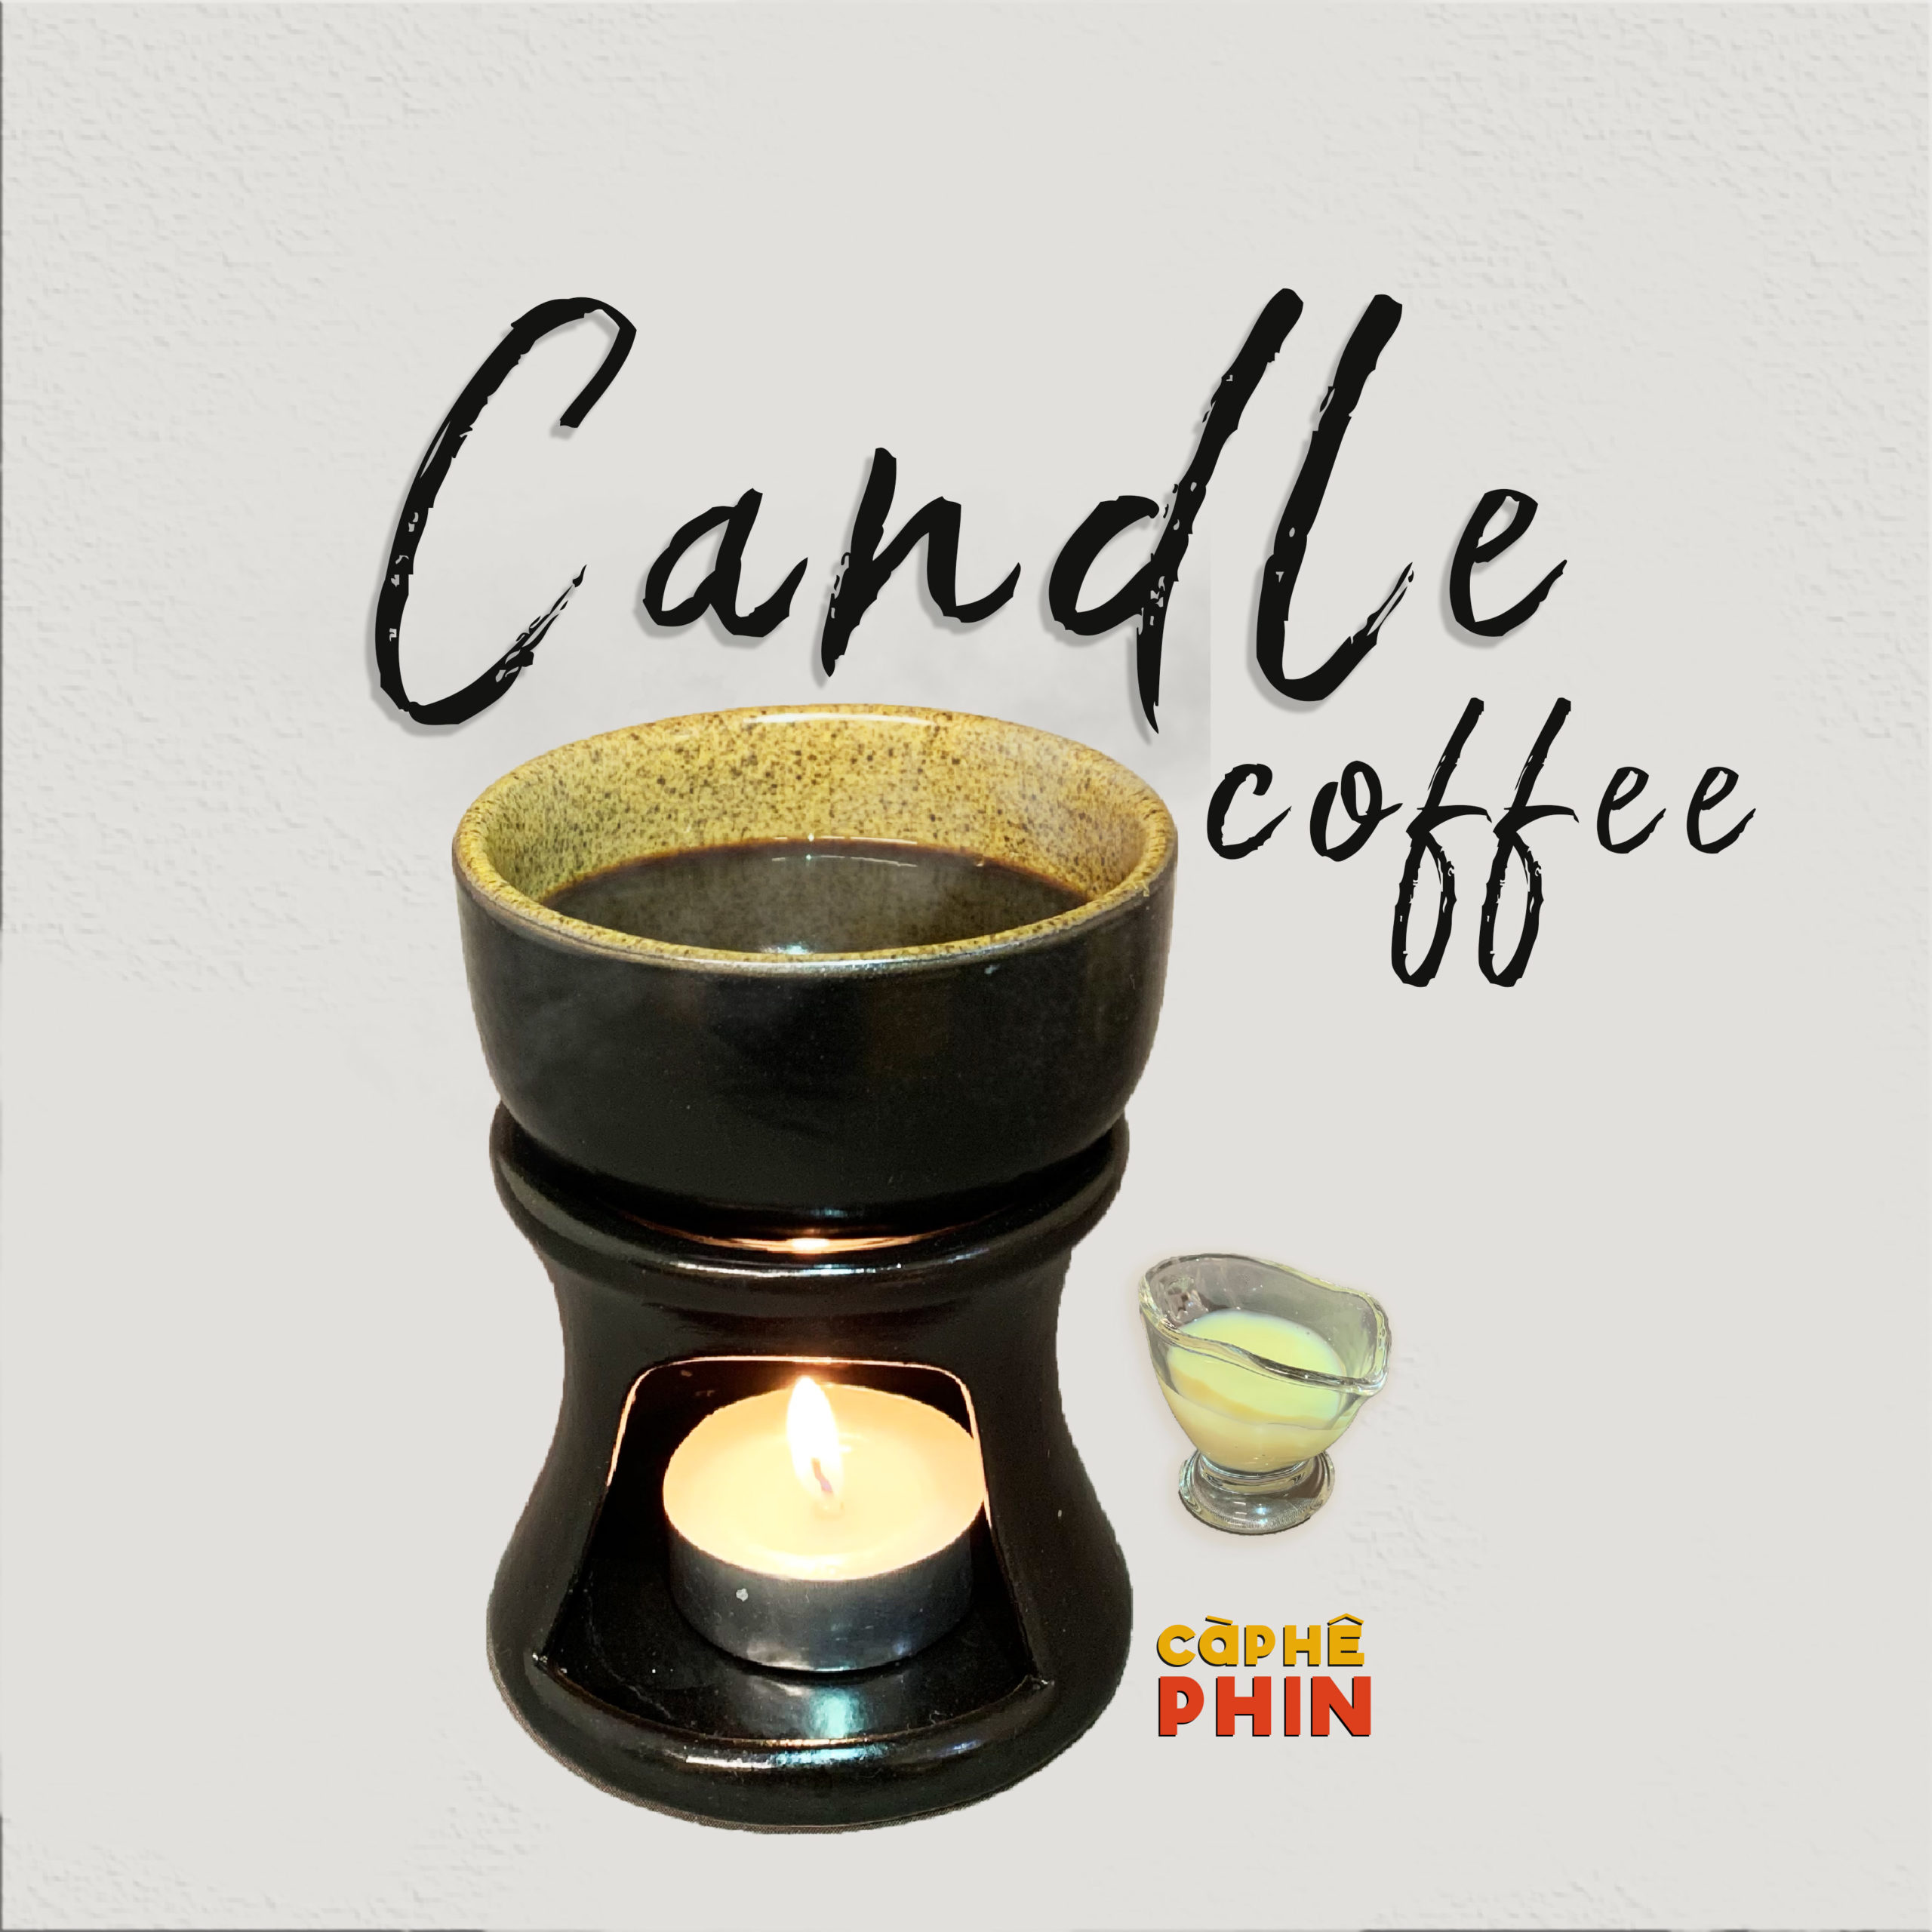 candlecoffee scaled